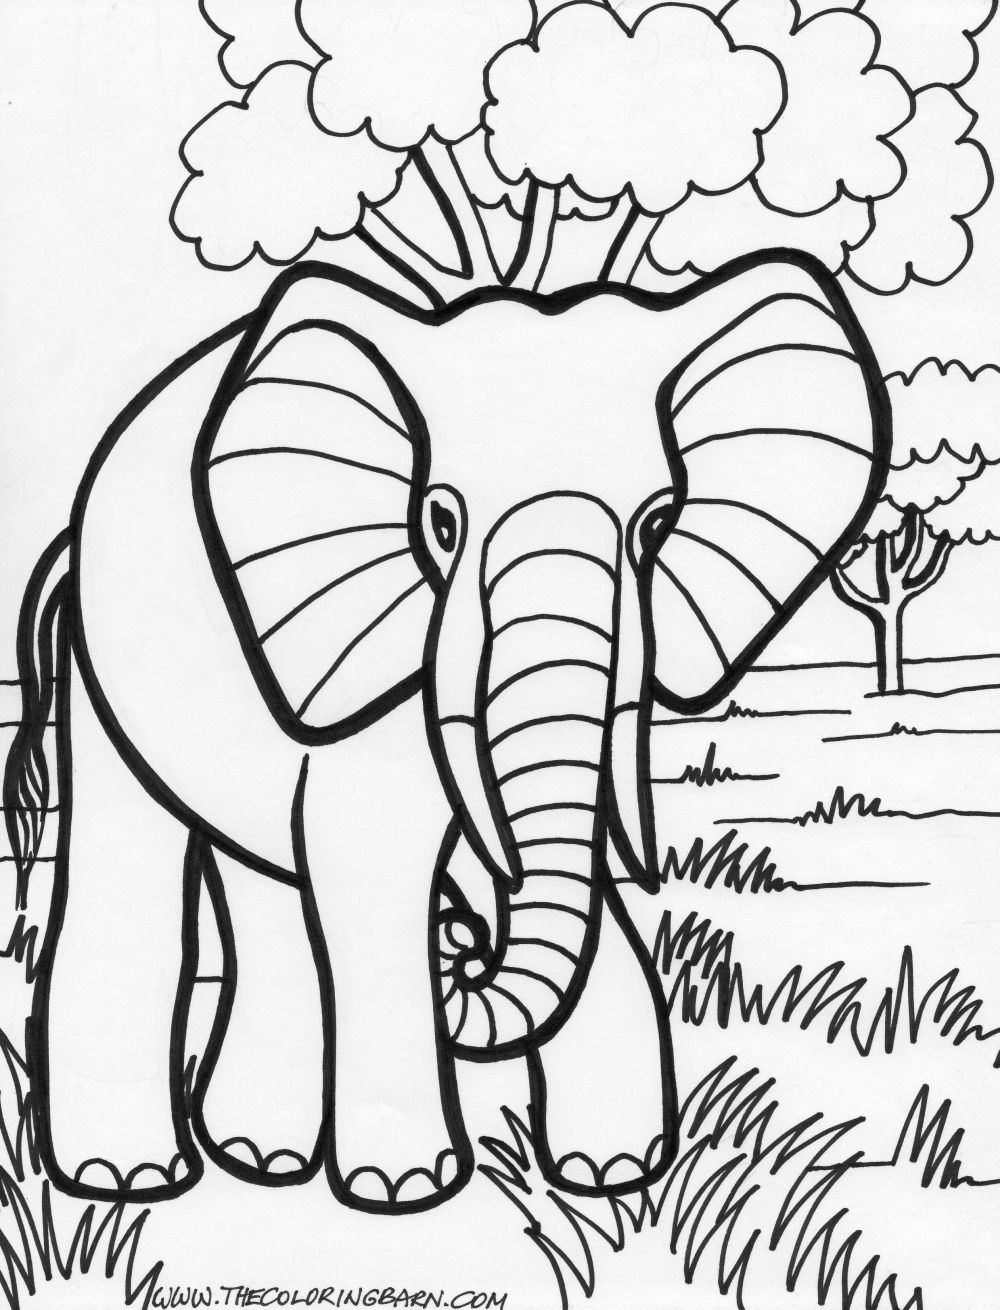 elephant images for colouring masami lauman 14 elephant coloring pages for kids images elephant colouring for